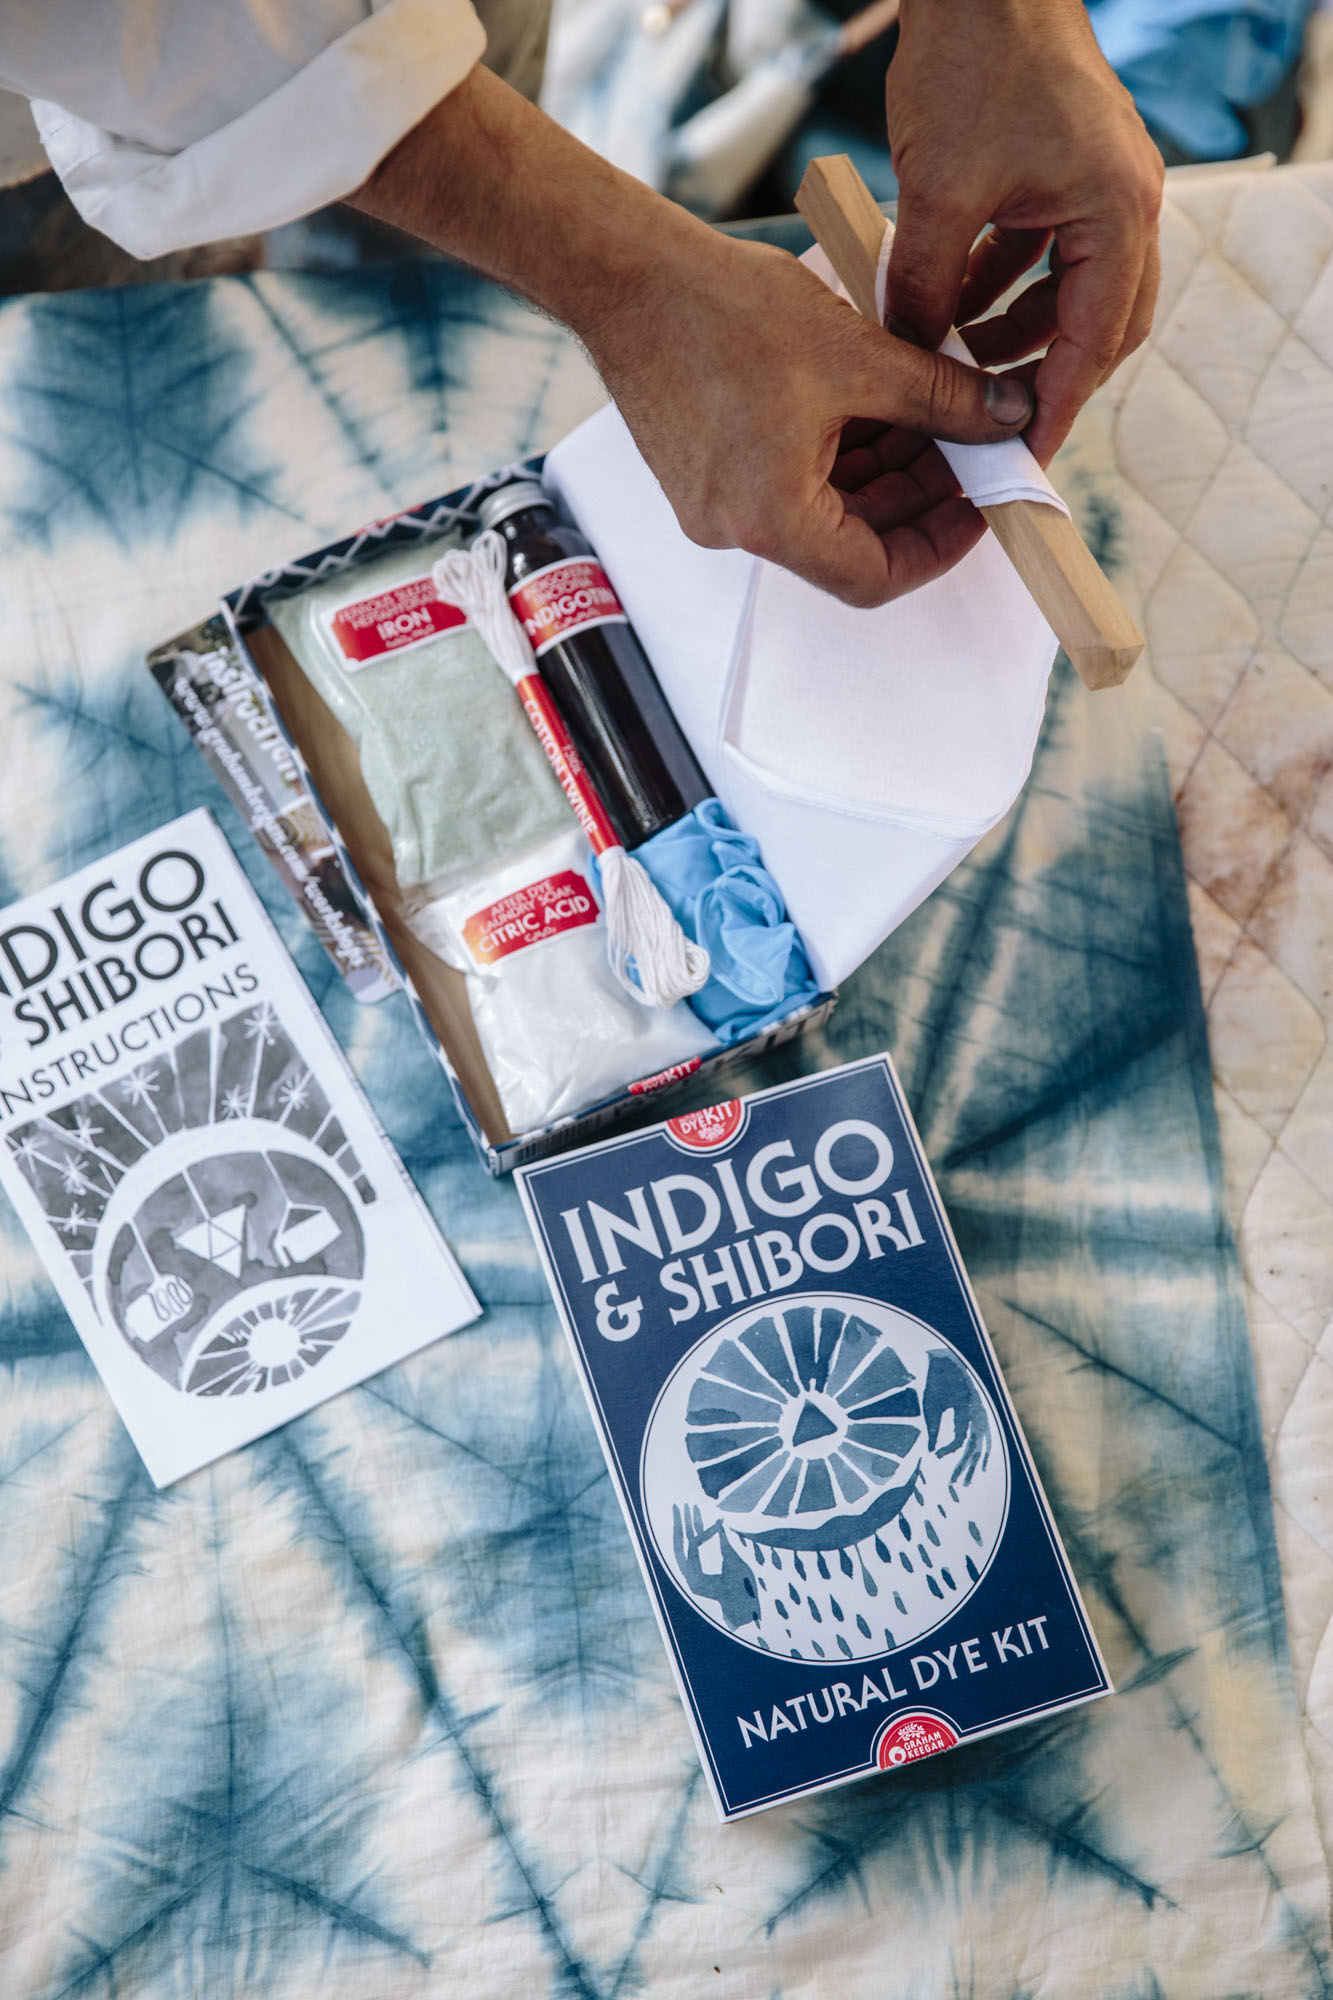 indigo + shibori natural dying kit